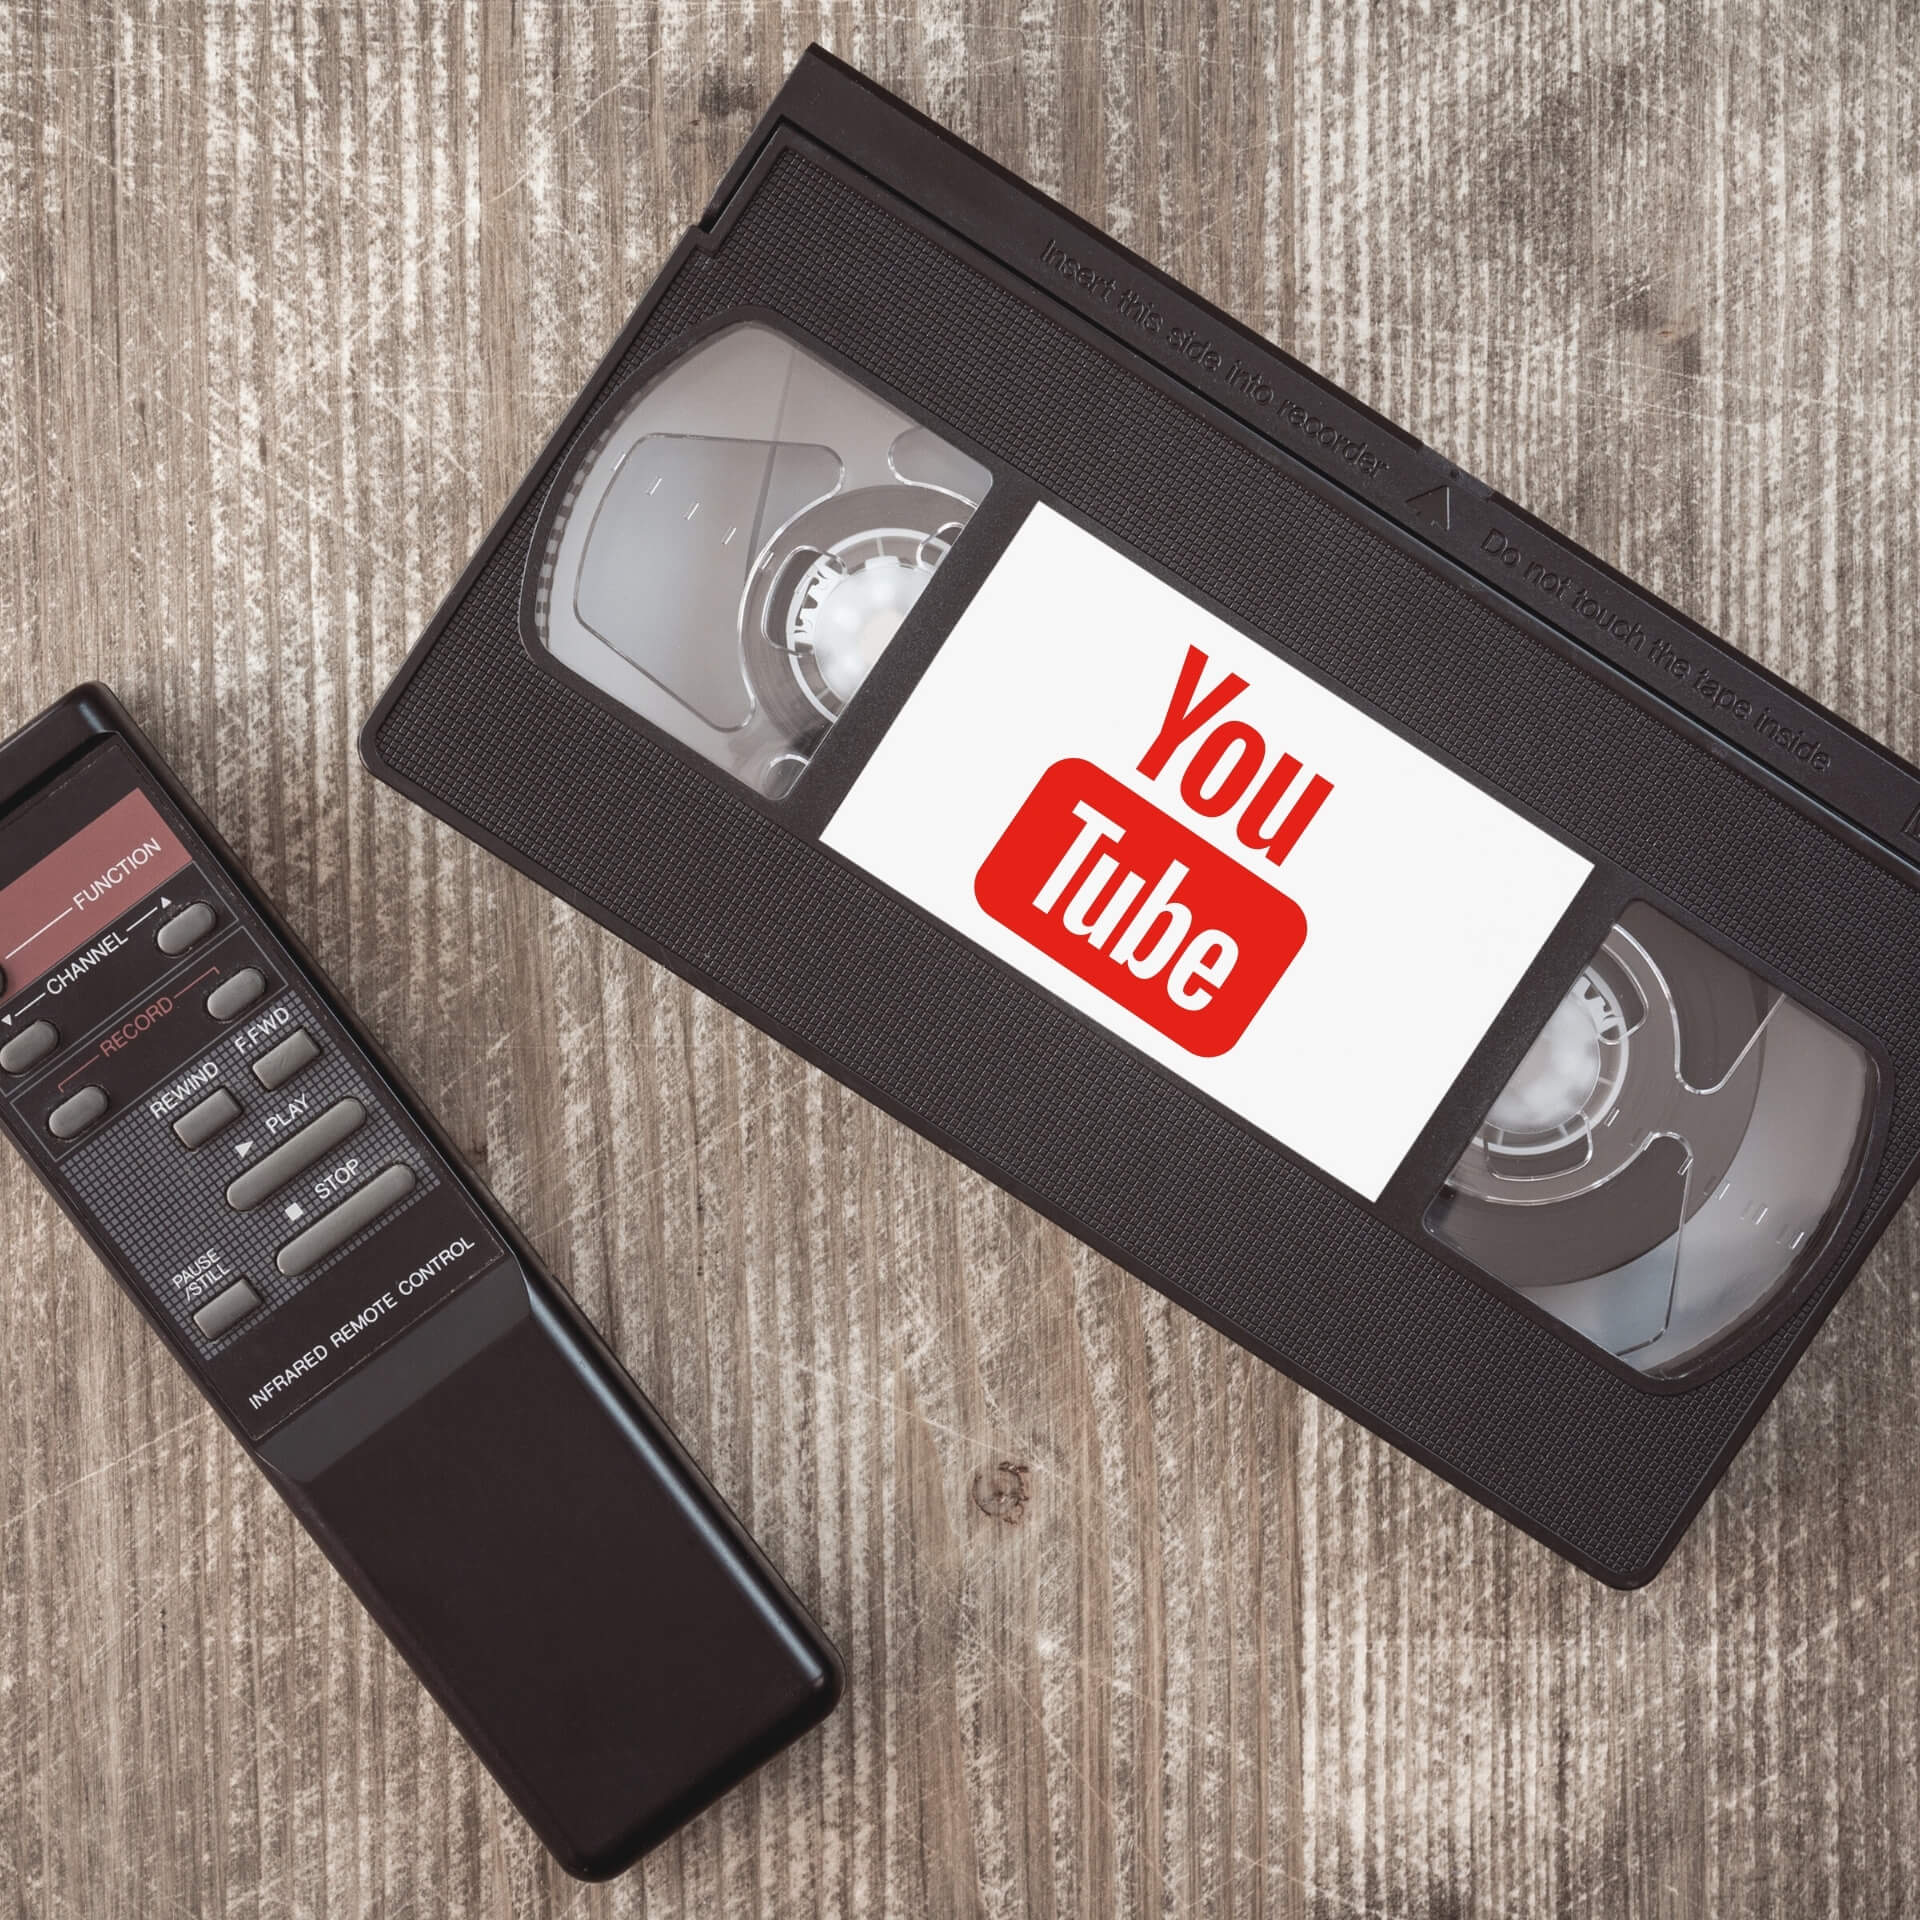 Video Marketing for Social Impact: Video tape with the YouTube logo on it.